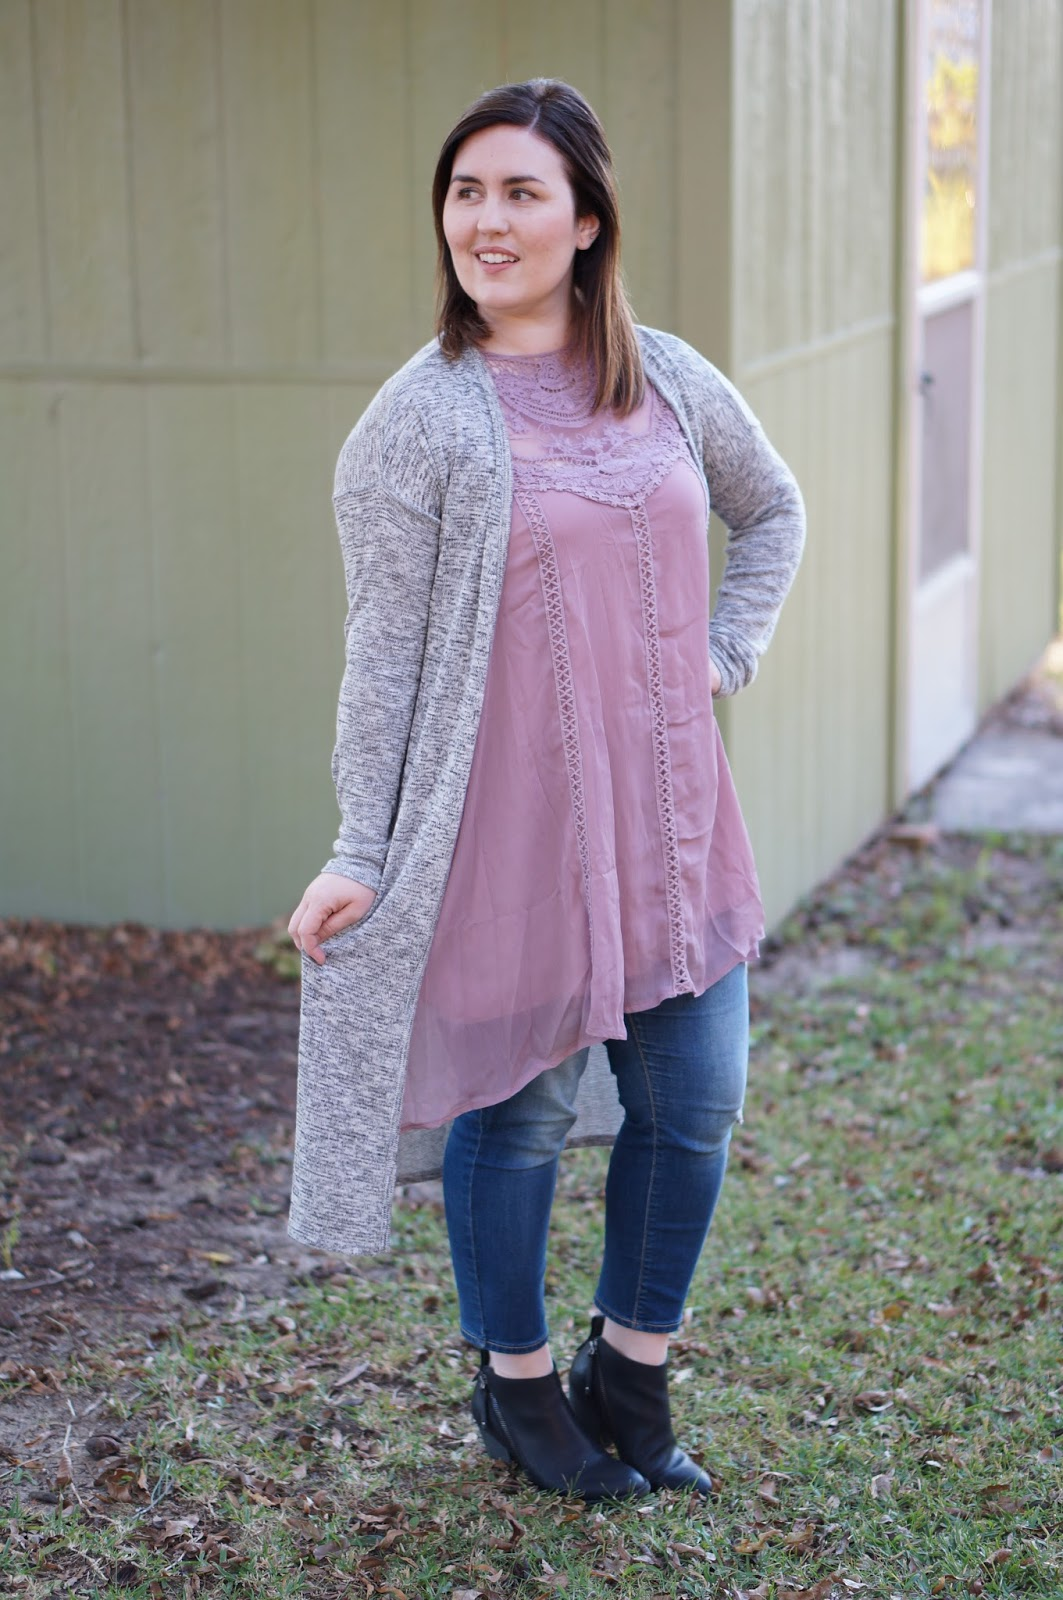 Rebecca Lately Rosegal Lace Dress Tunic Target Duster Cardigan DV Jameson Booties